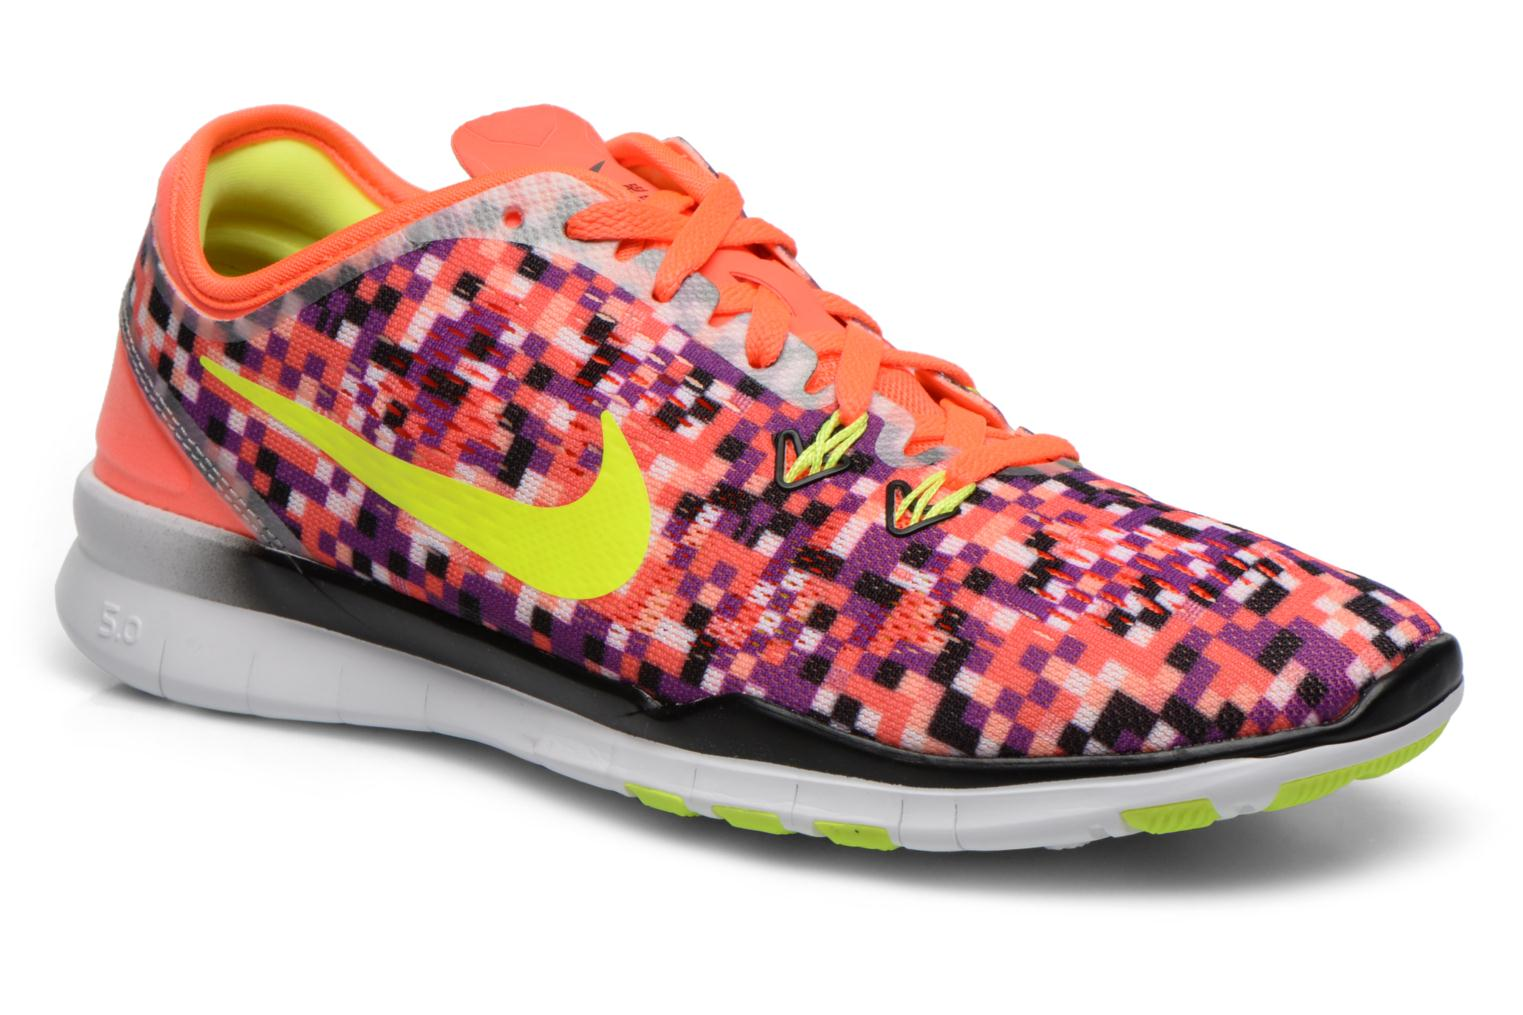 Wmns Nike Free 5.0 Tr Fit 5 Prt Hyper Orange/Black-Volt